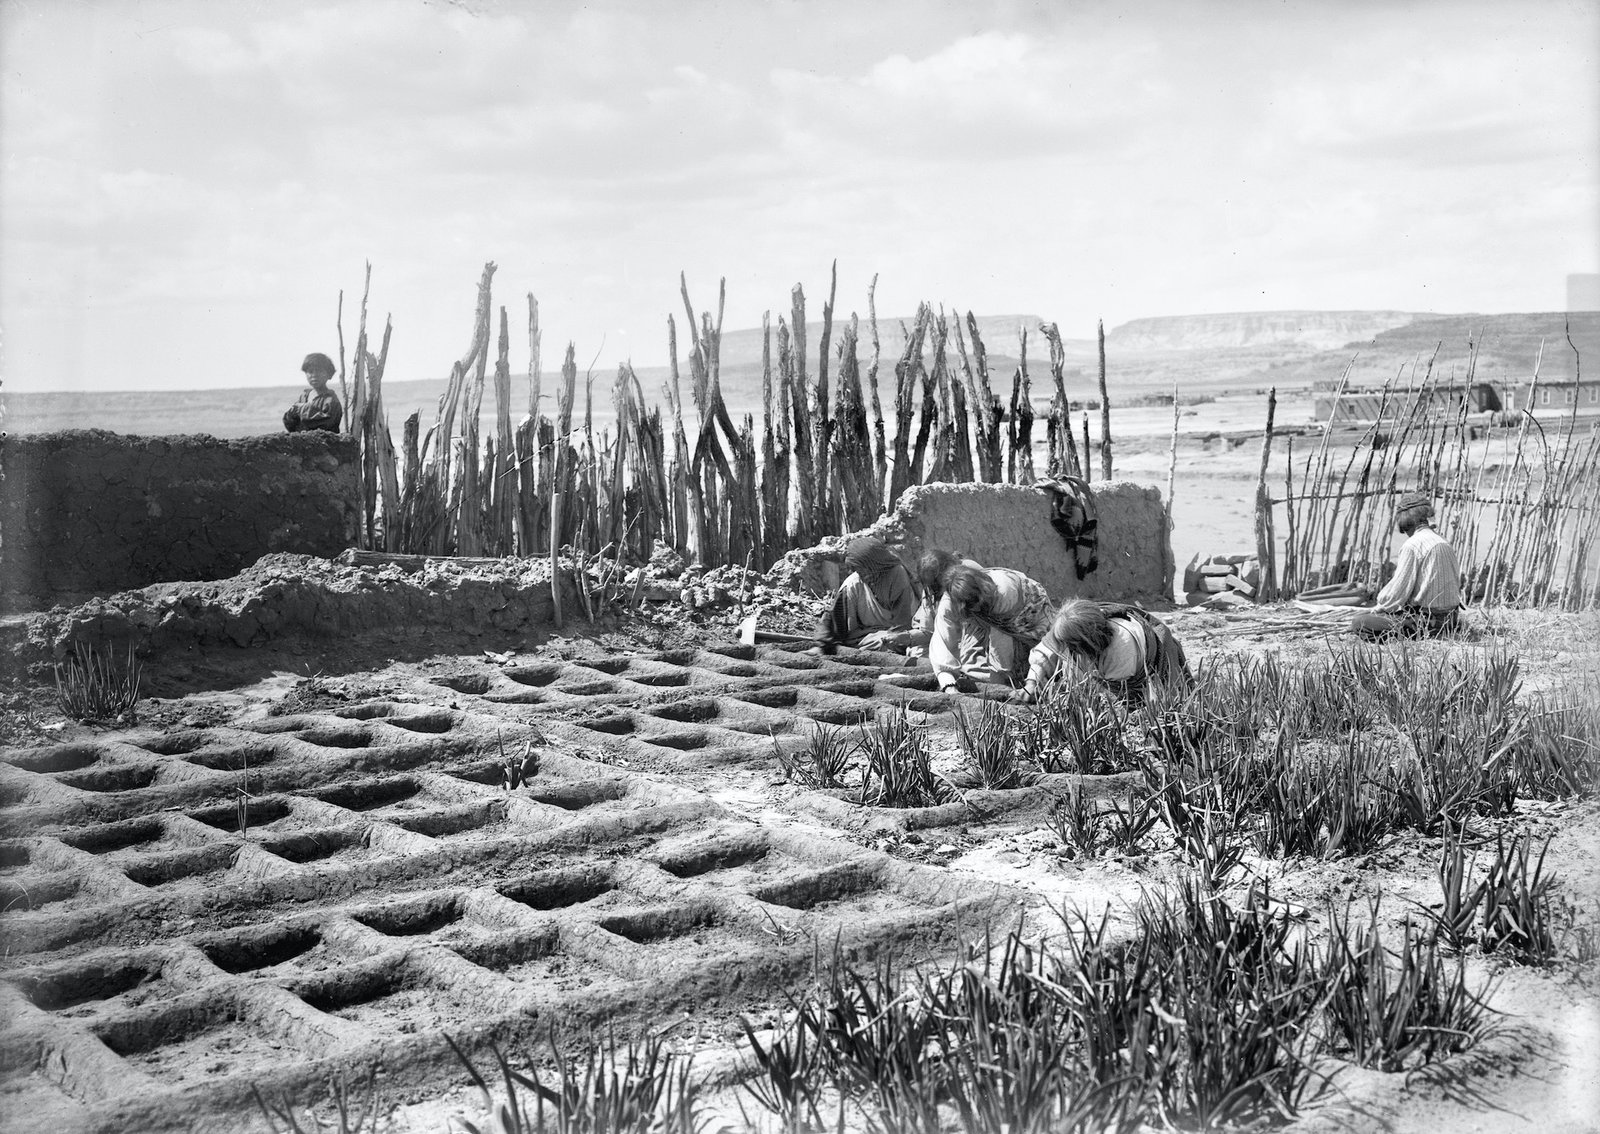 Waffle gardens at Zuni Pueblo in New Mexico circa 1910-1925. Waffle gardens are sunken plots with hard, hand-built adobe-like walls that catch and hold water close to plant roots for extended periods. This method—which offers wind protection and temperature control, while limiting evaporation and erosion—was developed at the neighborhood scale to ensure harvests, while combating the unpredictable water availability and inadequate soil quality that are common to desert environments.  Photo 5 of 8 in We May Already Have the Technology to Survive a Climate Crisis—We've Just Been Ignoring It